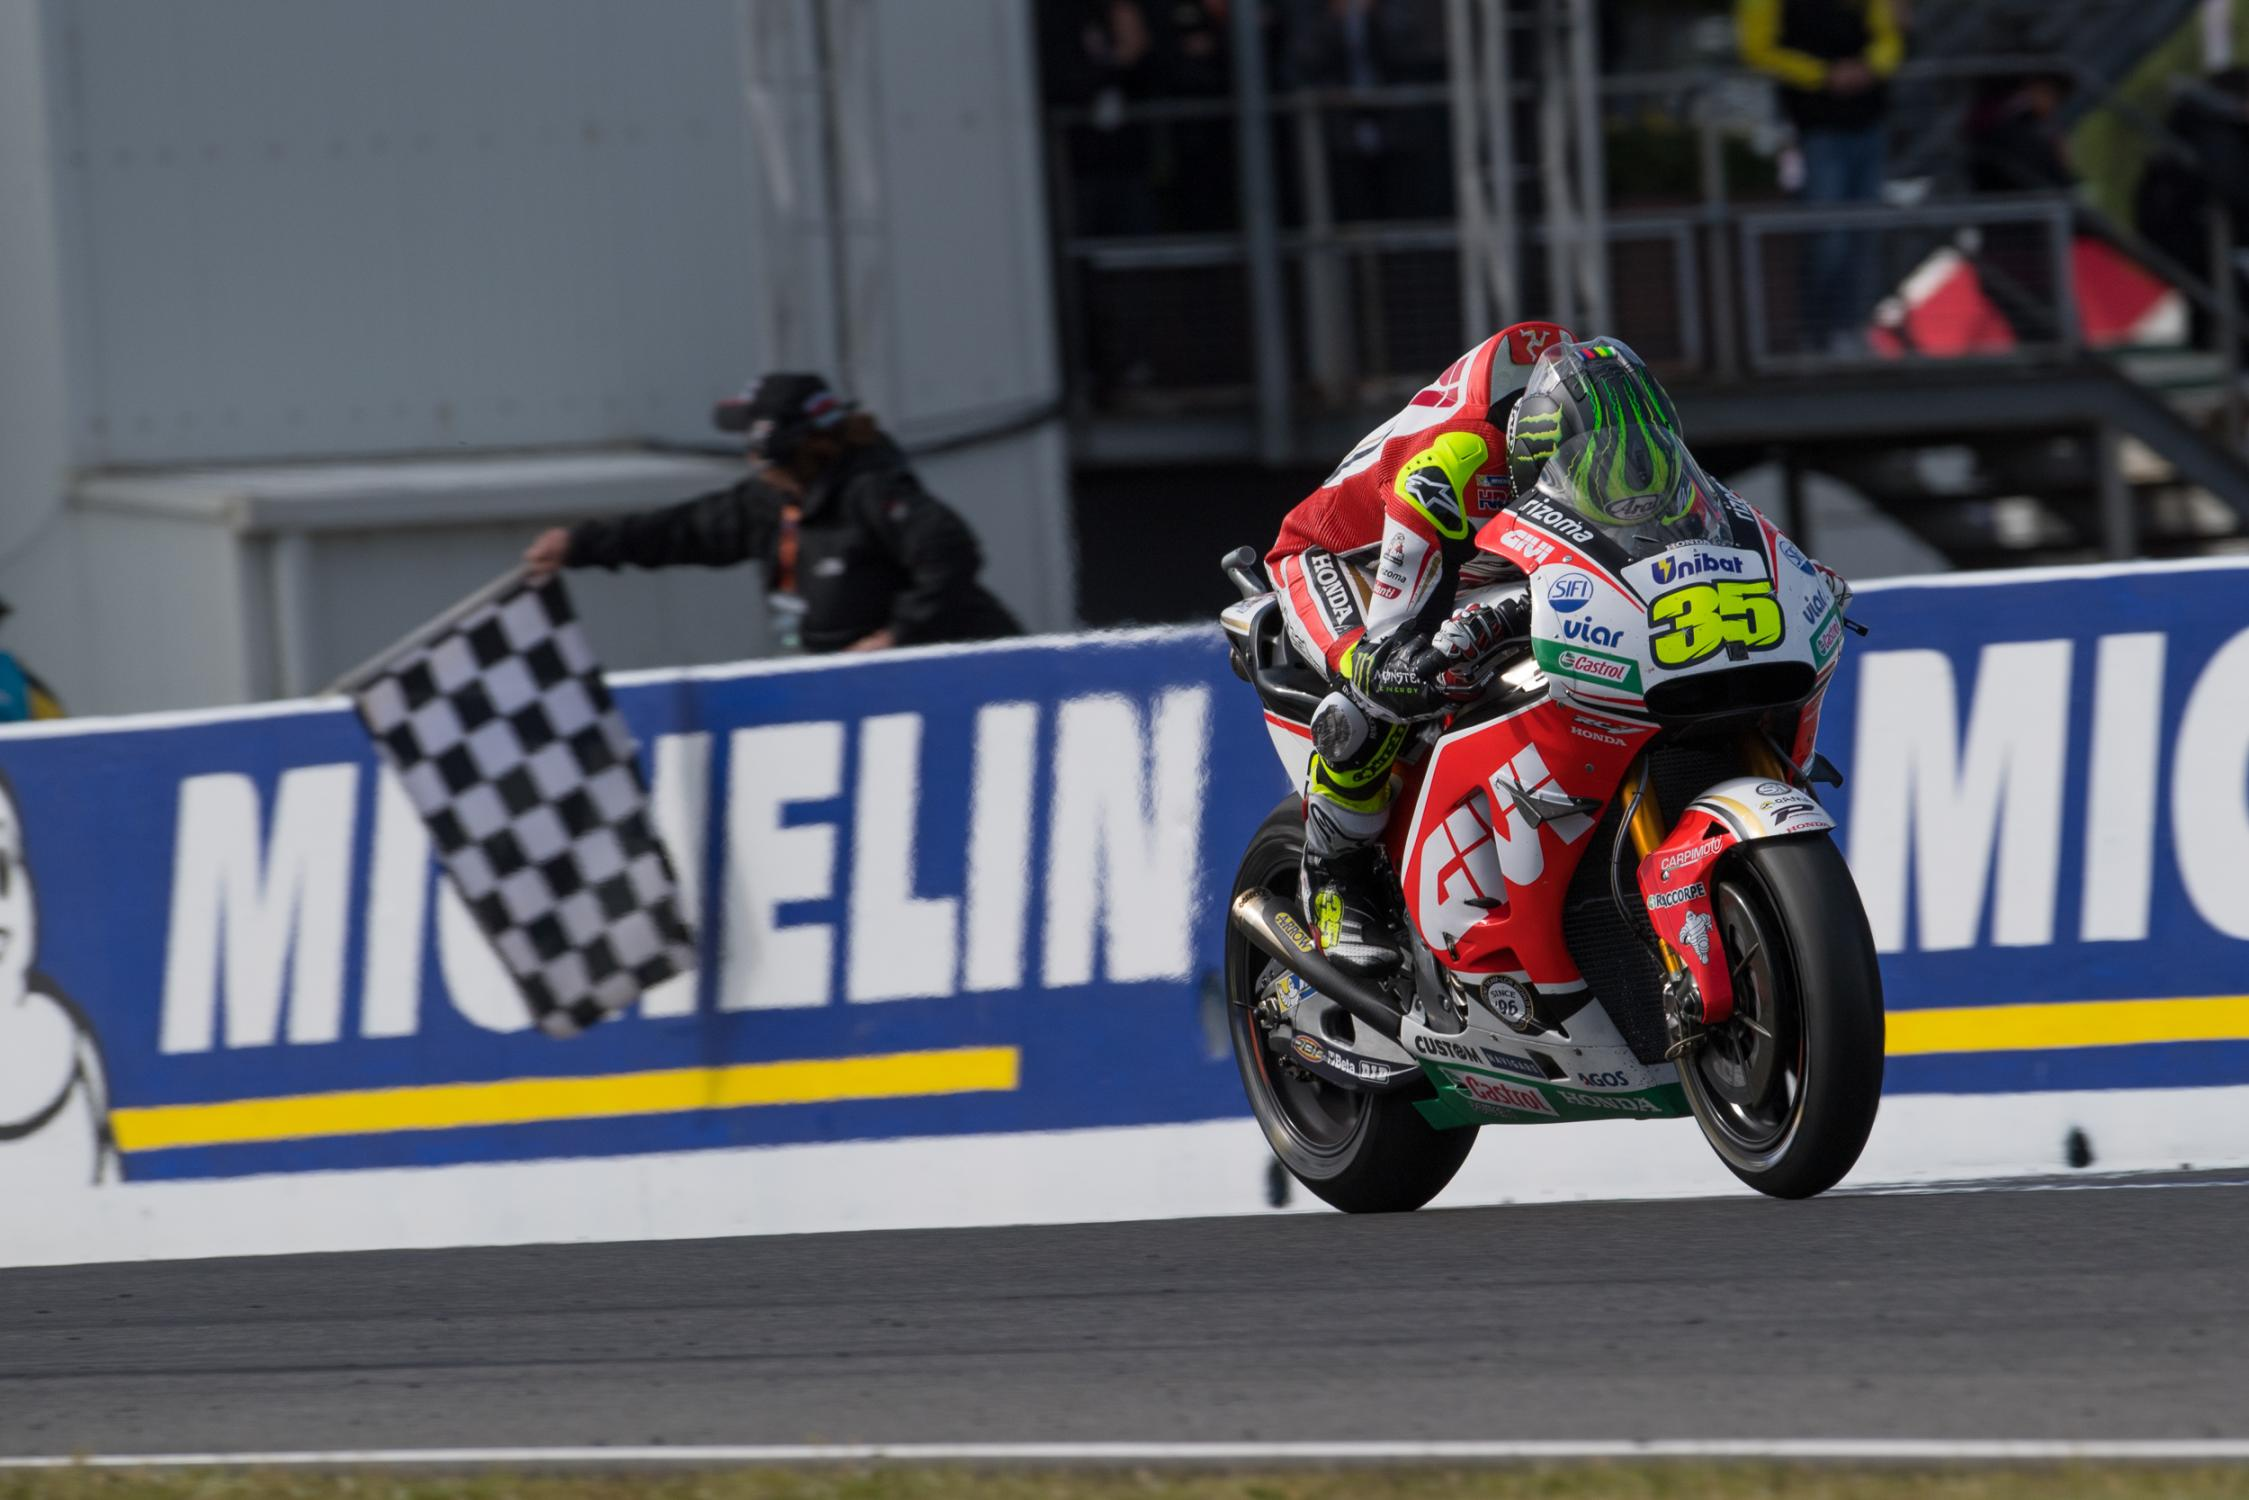 35-cal-crutchlow-englg5_4525.gallery_full_top_fullscreen.jpg